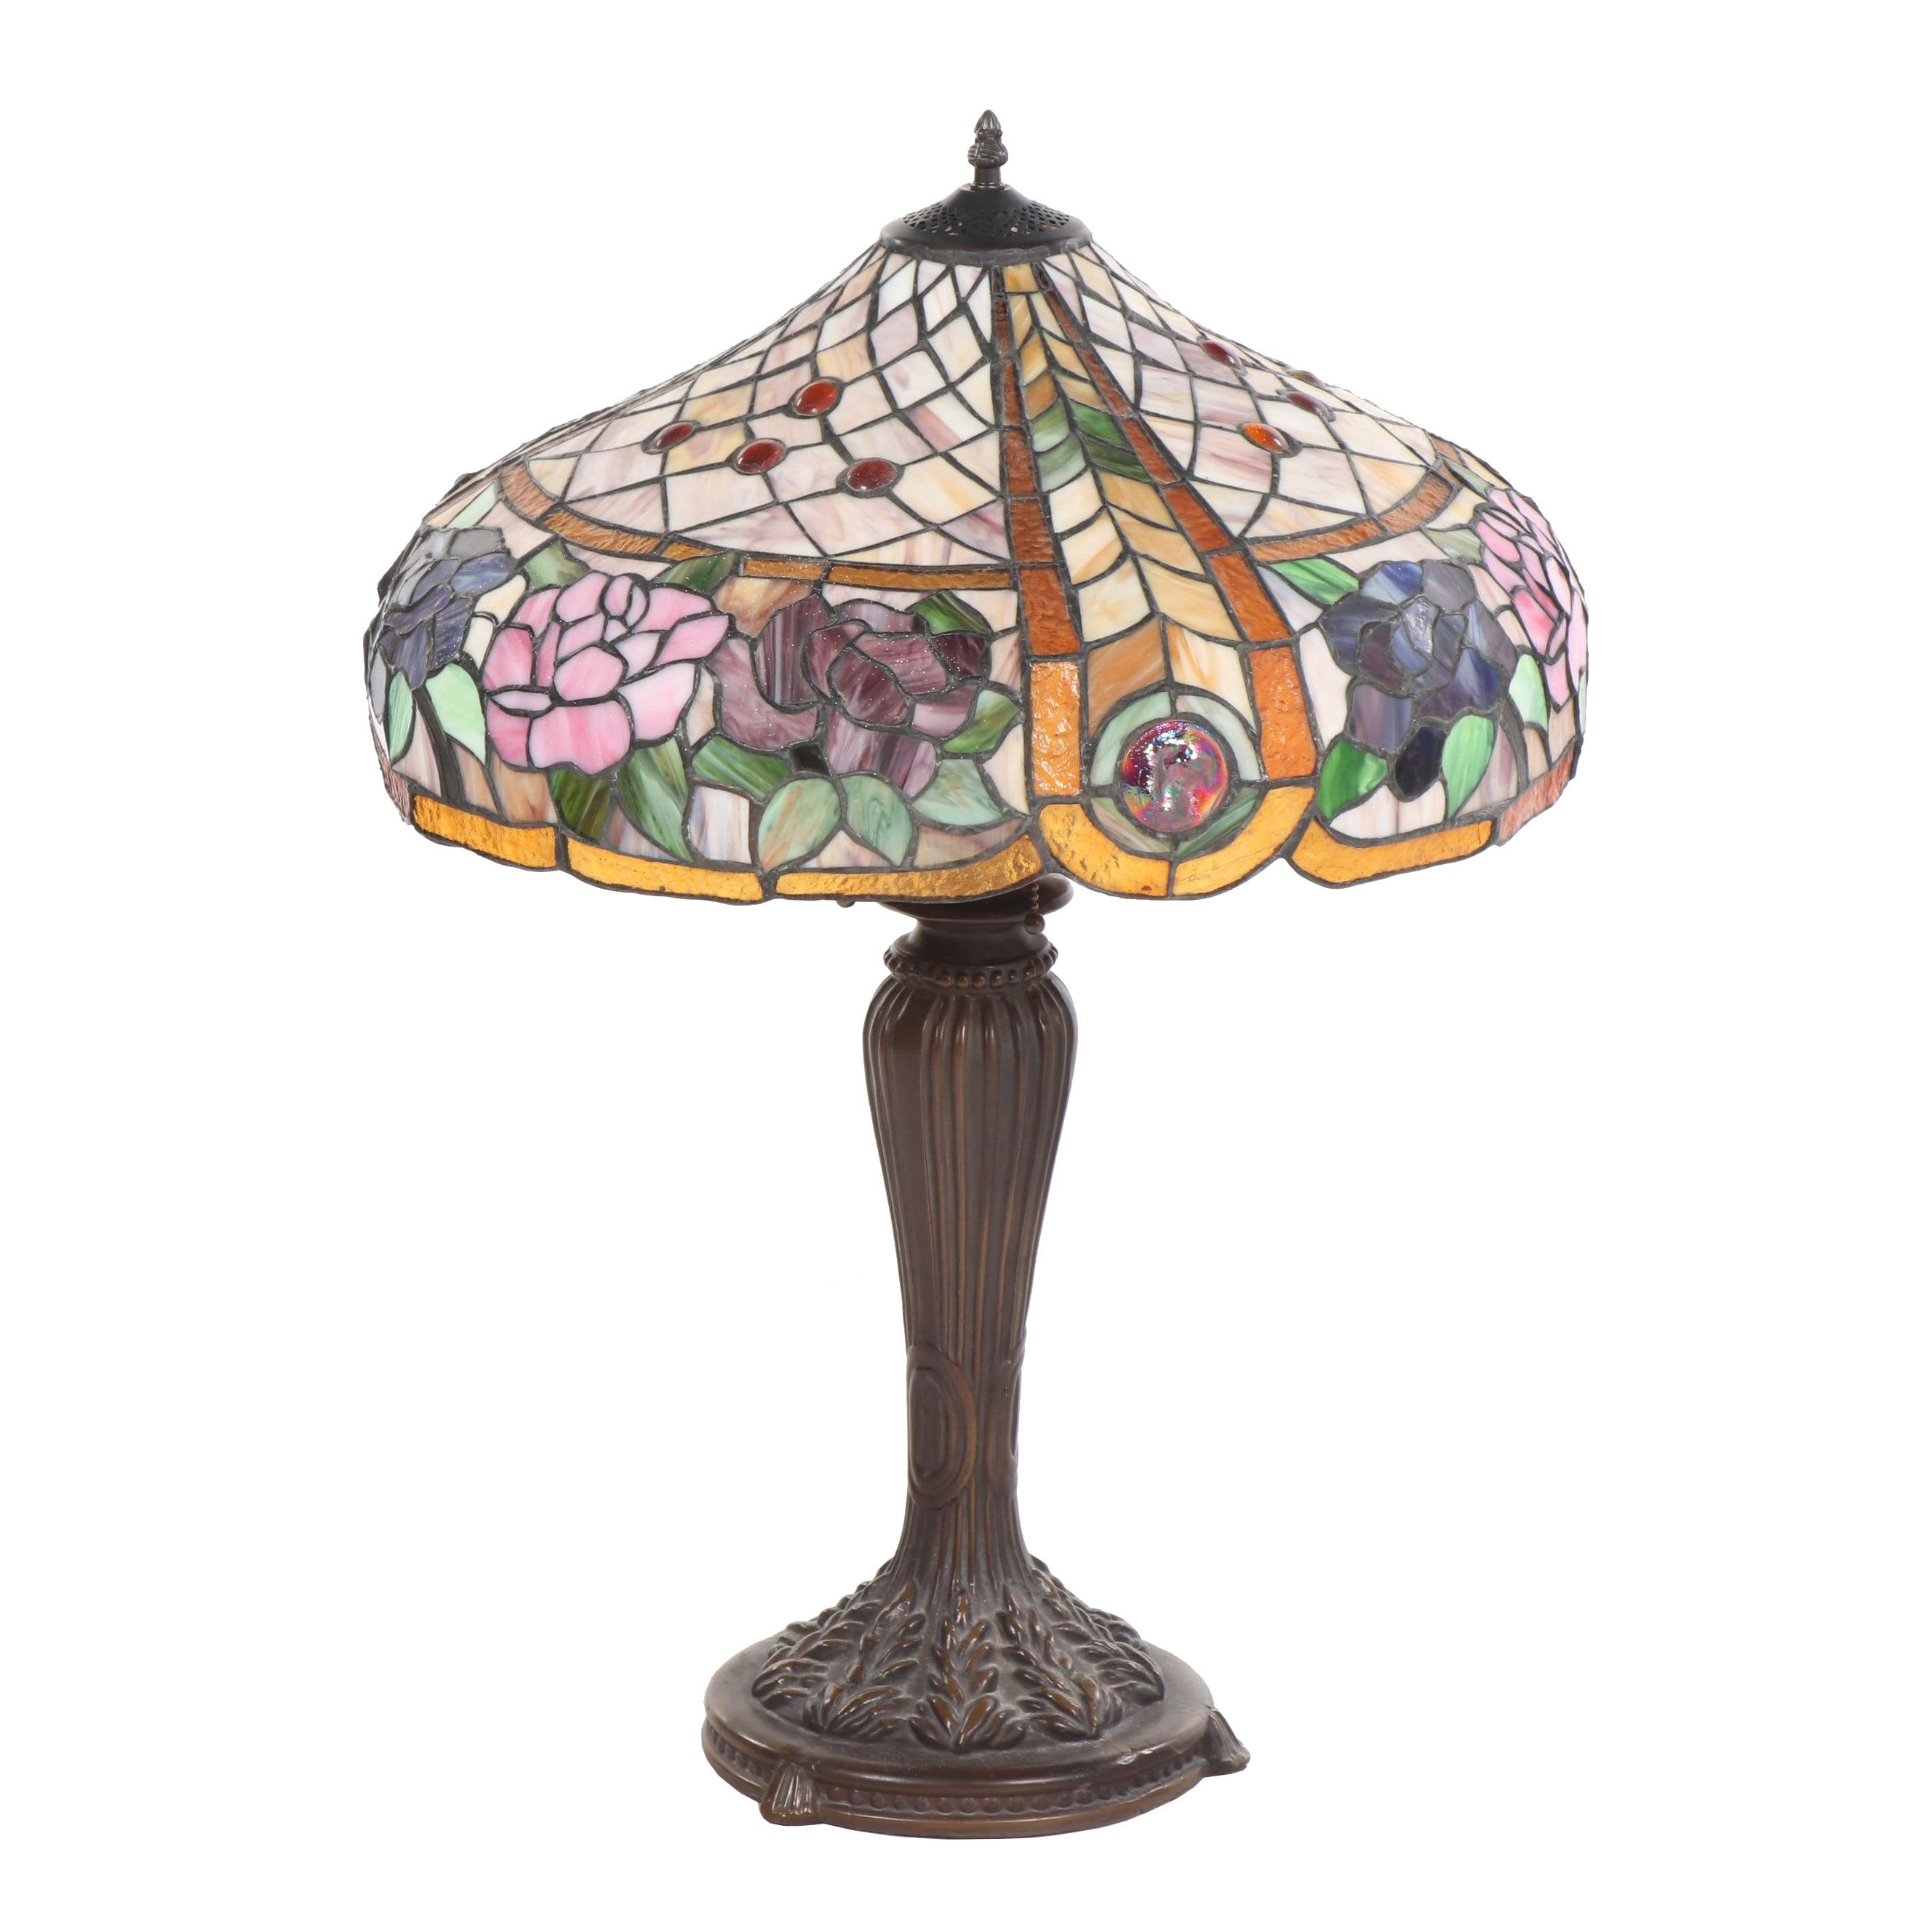 Metal Table Lamp with Rose and Basketweave Motif Stained Glass Shade